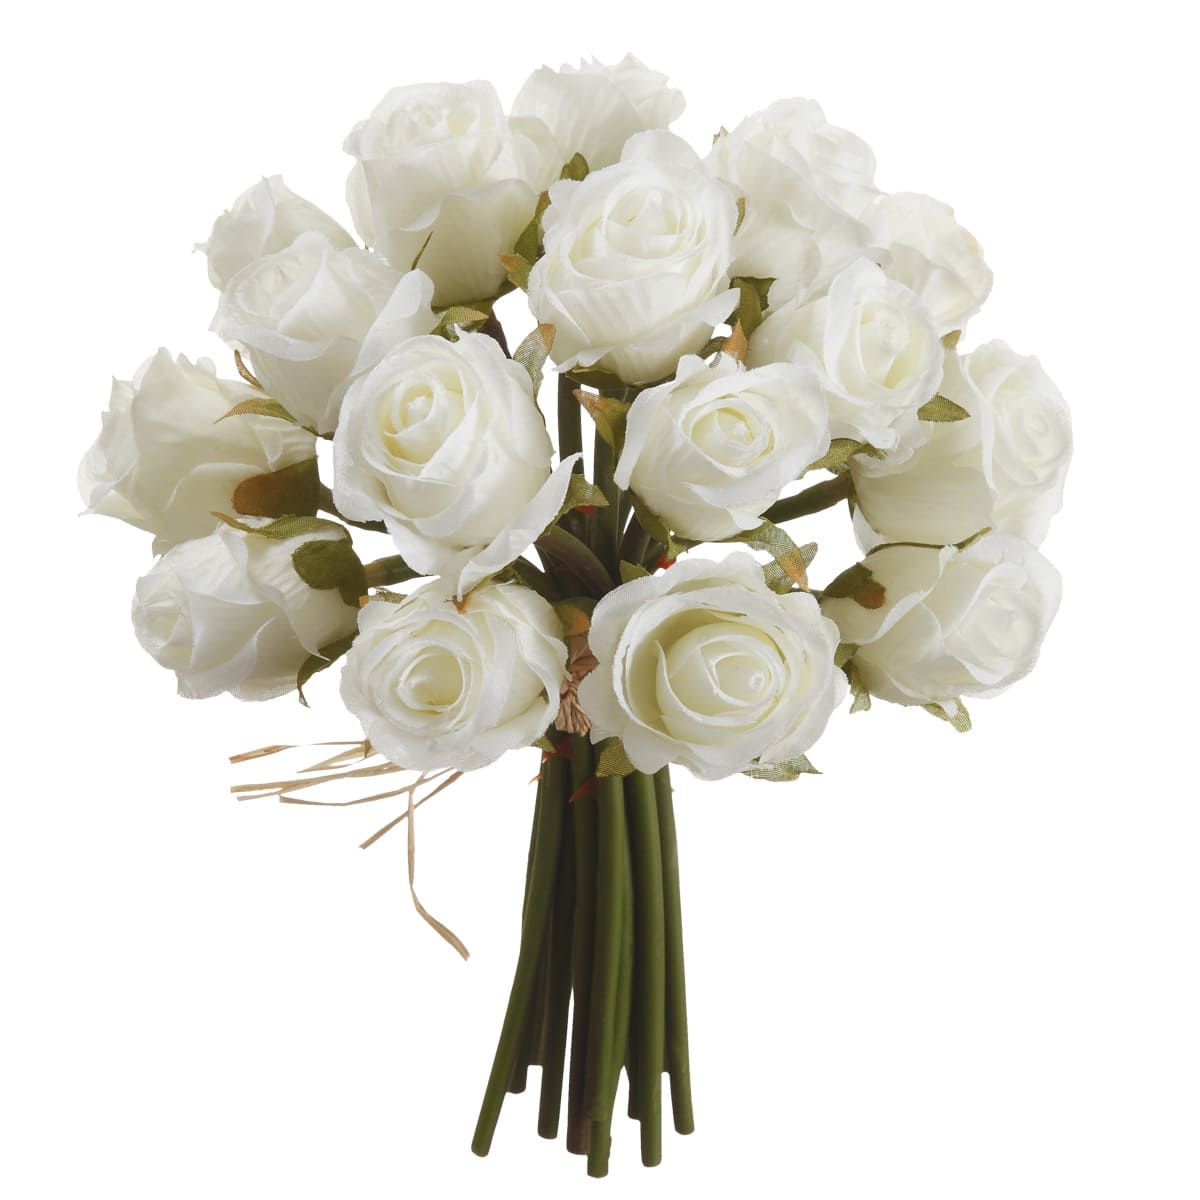 Floral arrangements images Centerpiece Img Angeluck Floral Arrangements Michaels